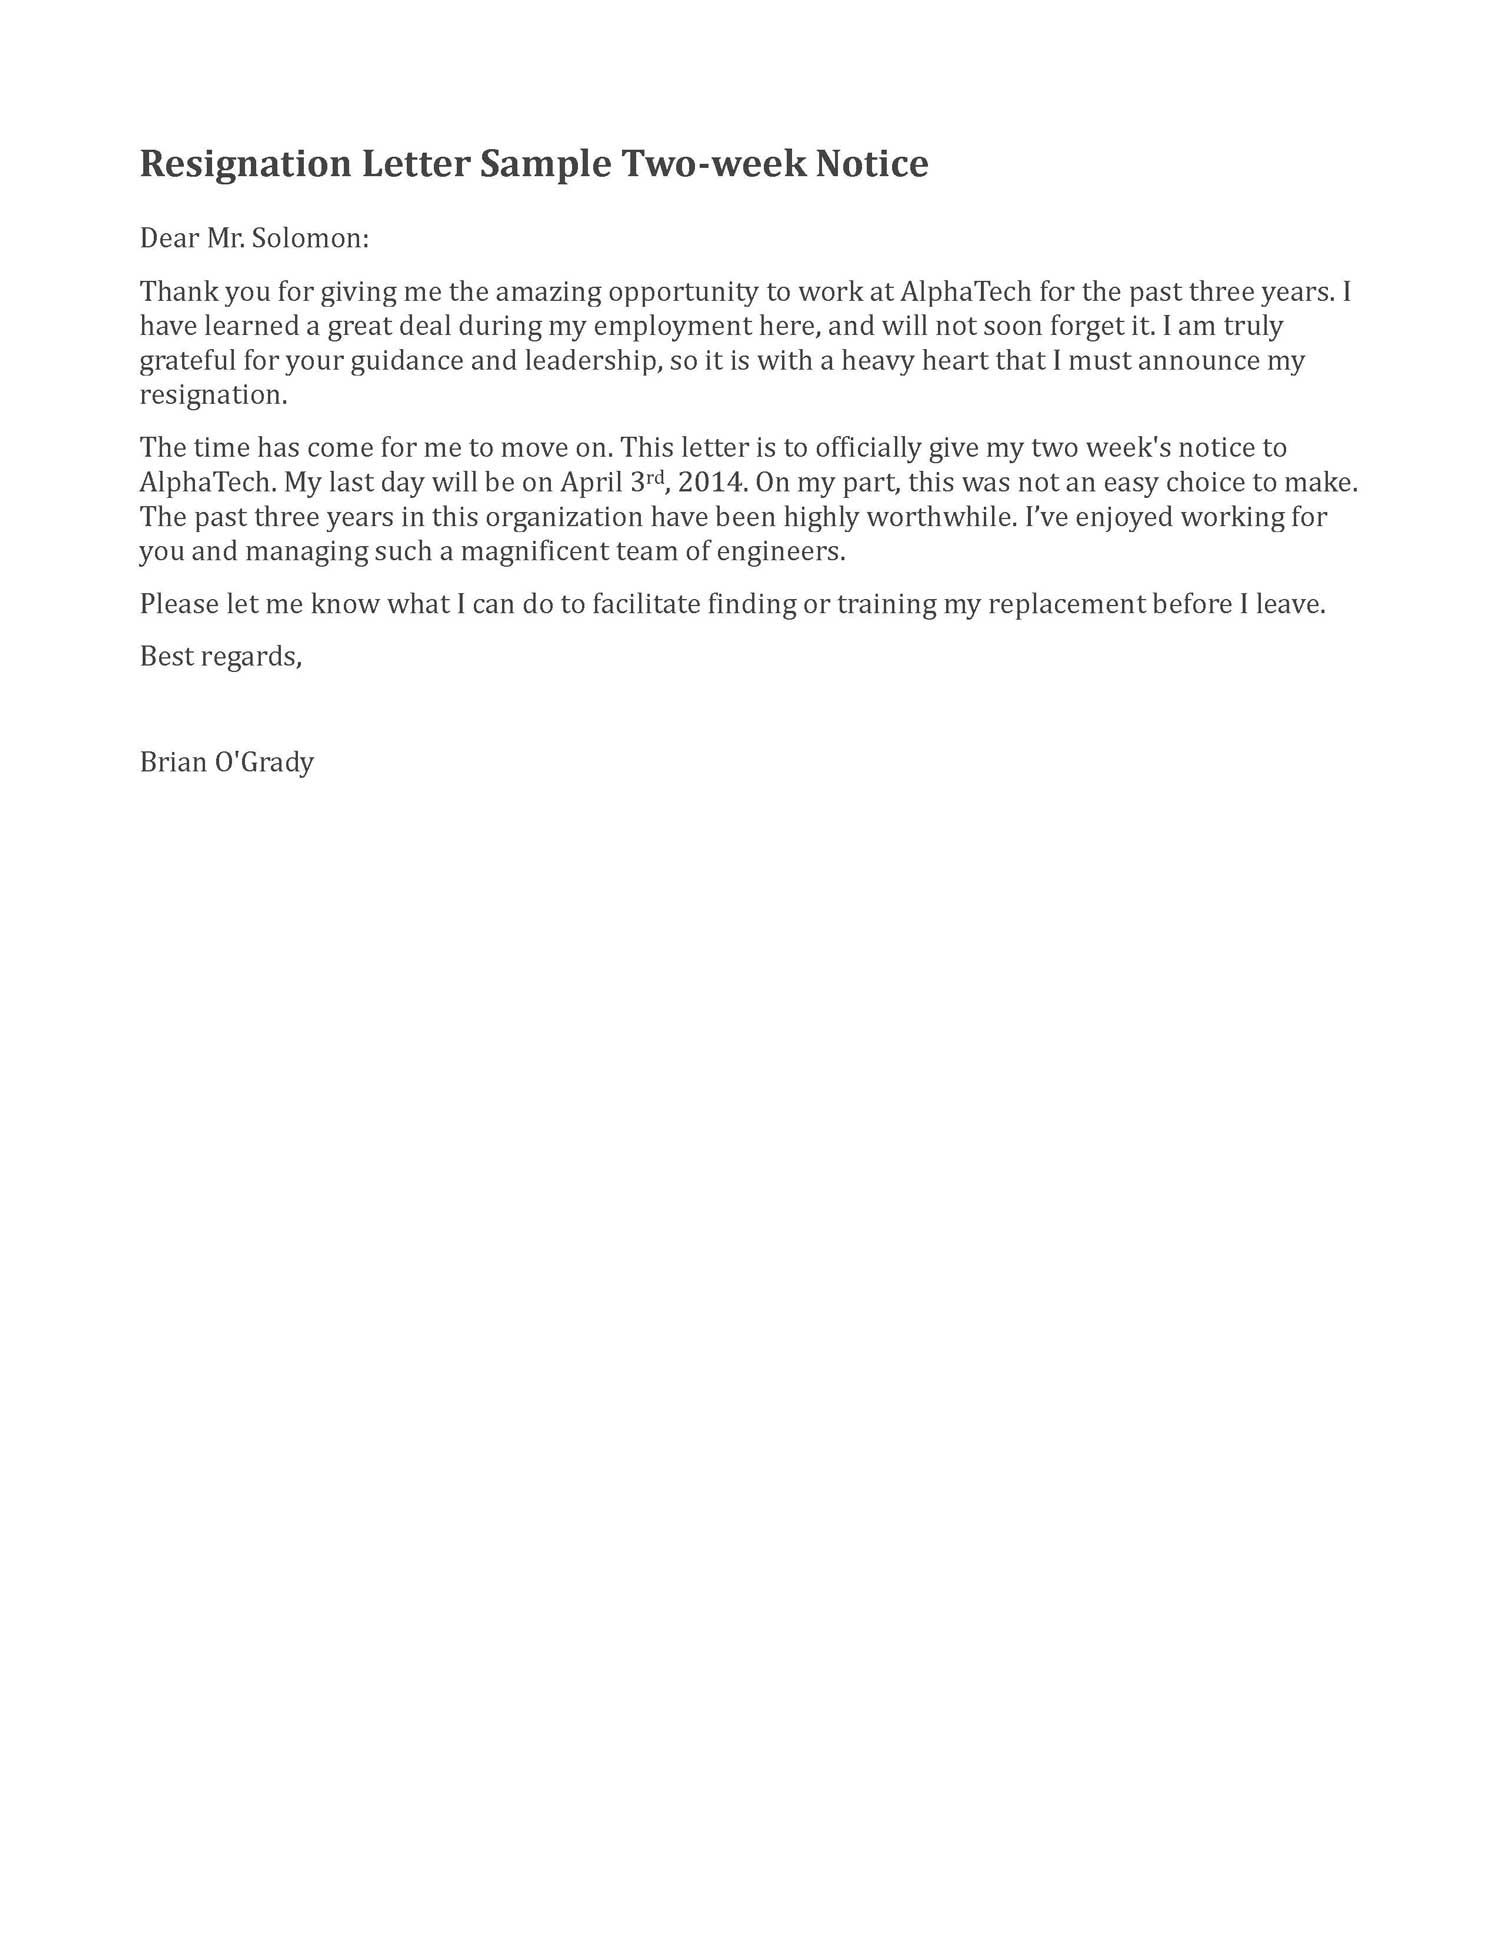 Resignation letter sample 2 weeks notice google search resignation letter sample 2 weeks notice google search expocarfo